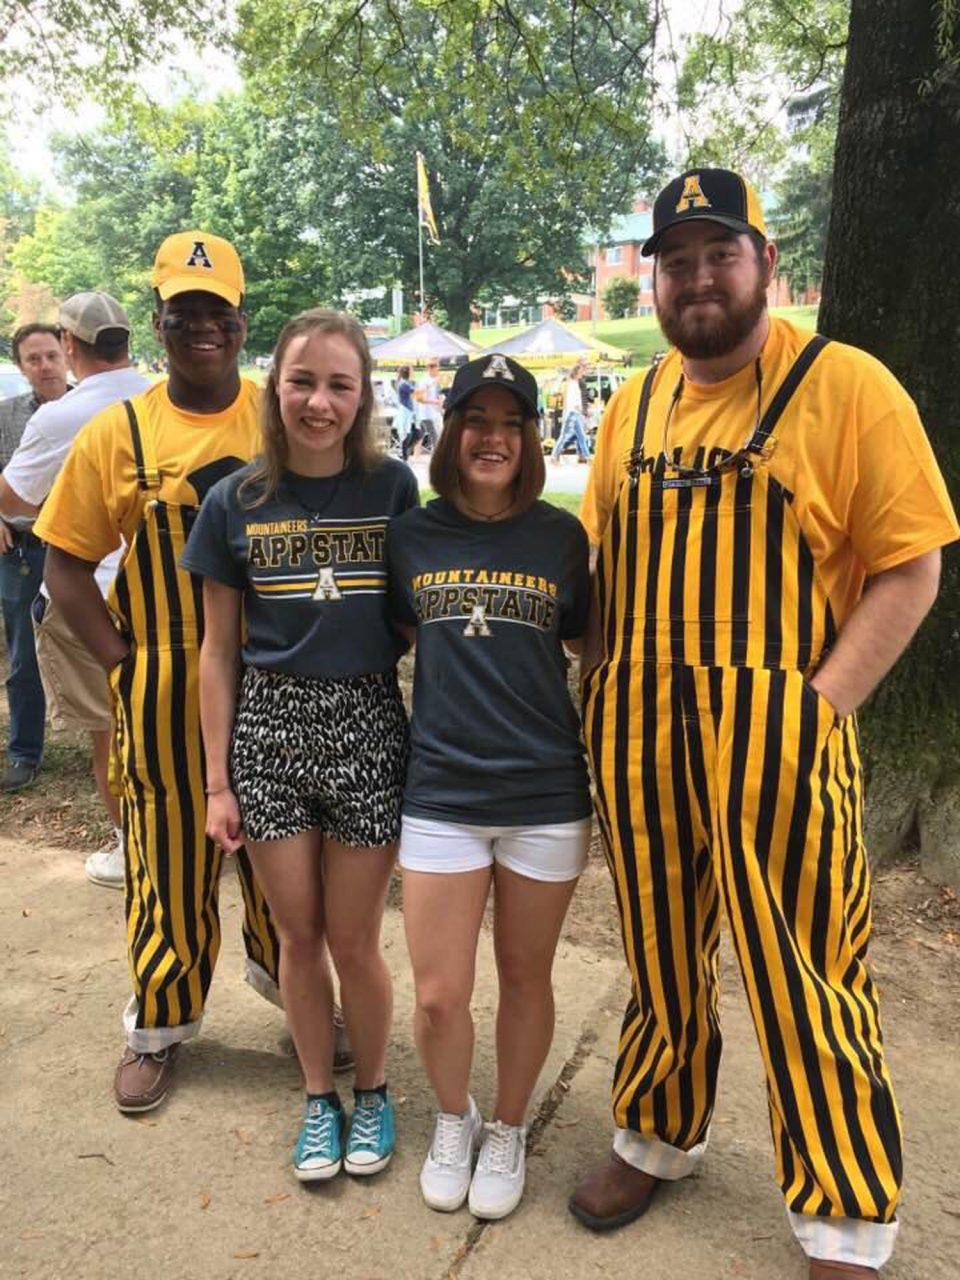 Senior+Annika+Sharard+from+Australia+and+junior+Mae+M%C3%BCller+from+Germany+experiencing+their+first+Appalachian+State+football+game+as+international+students.